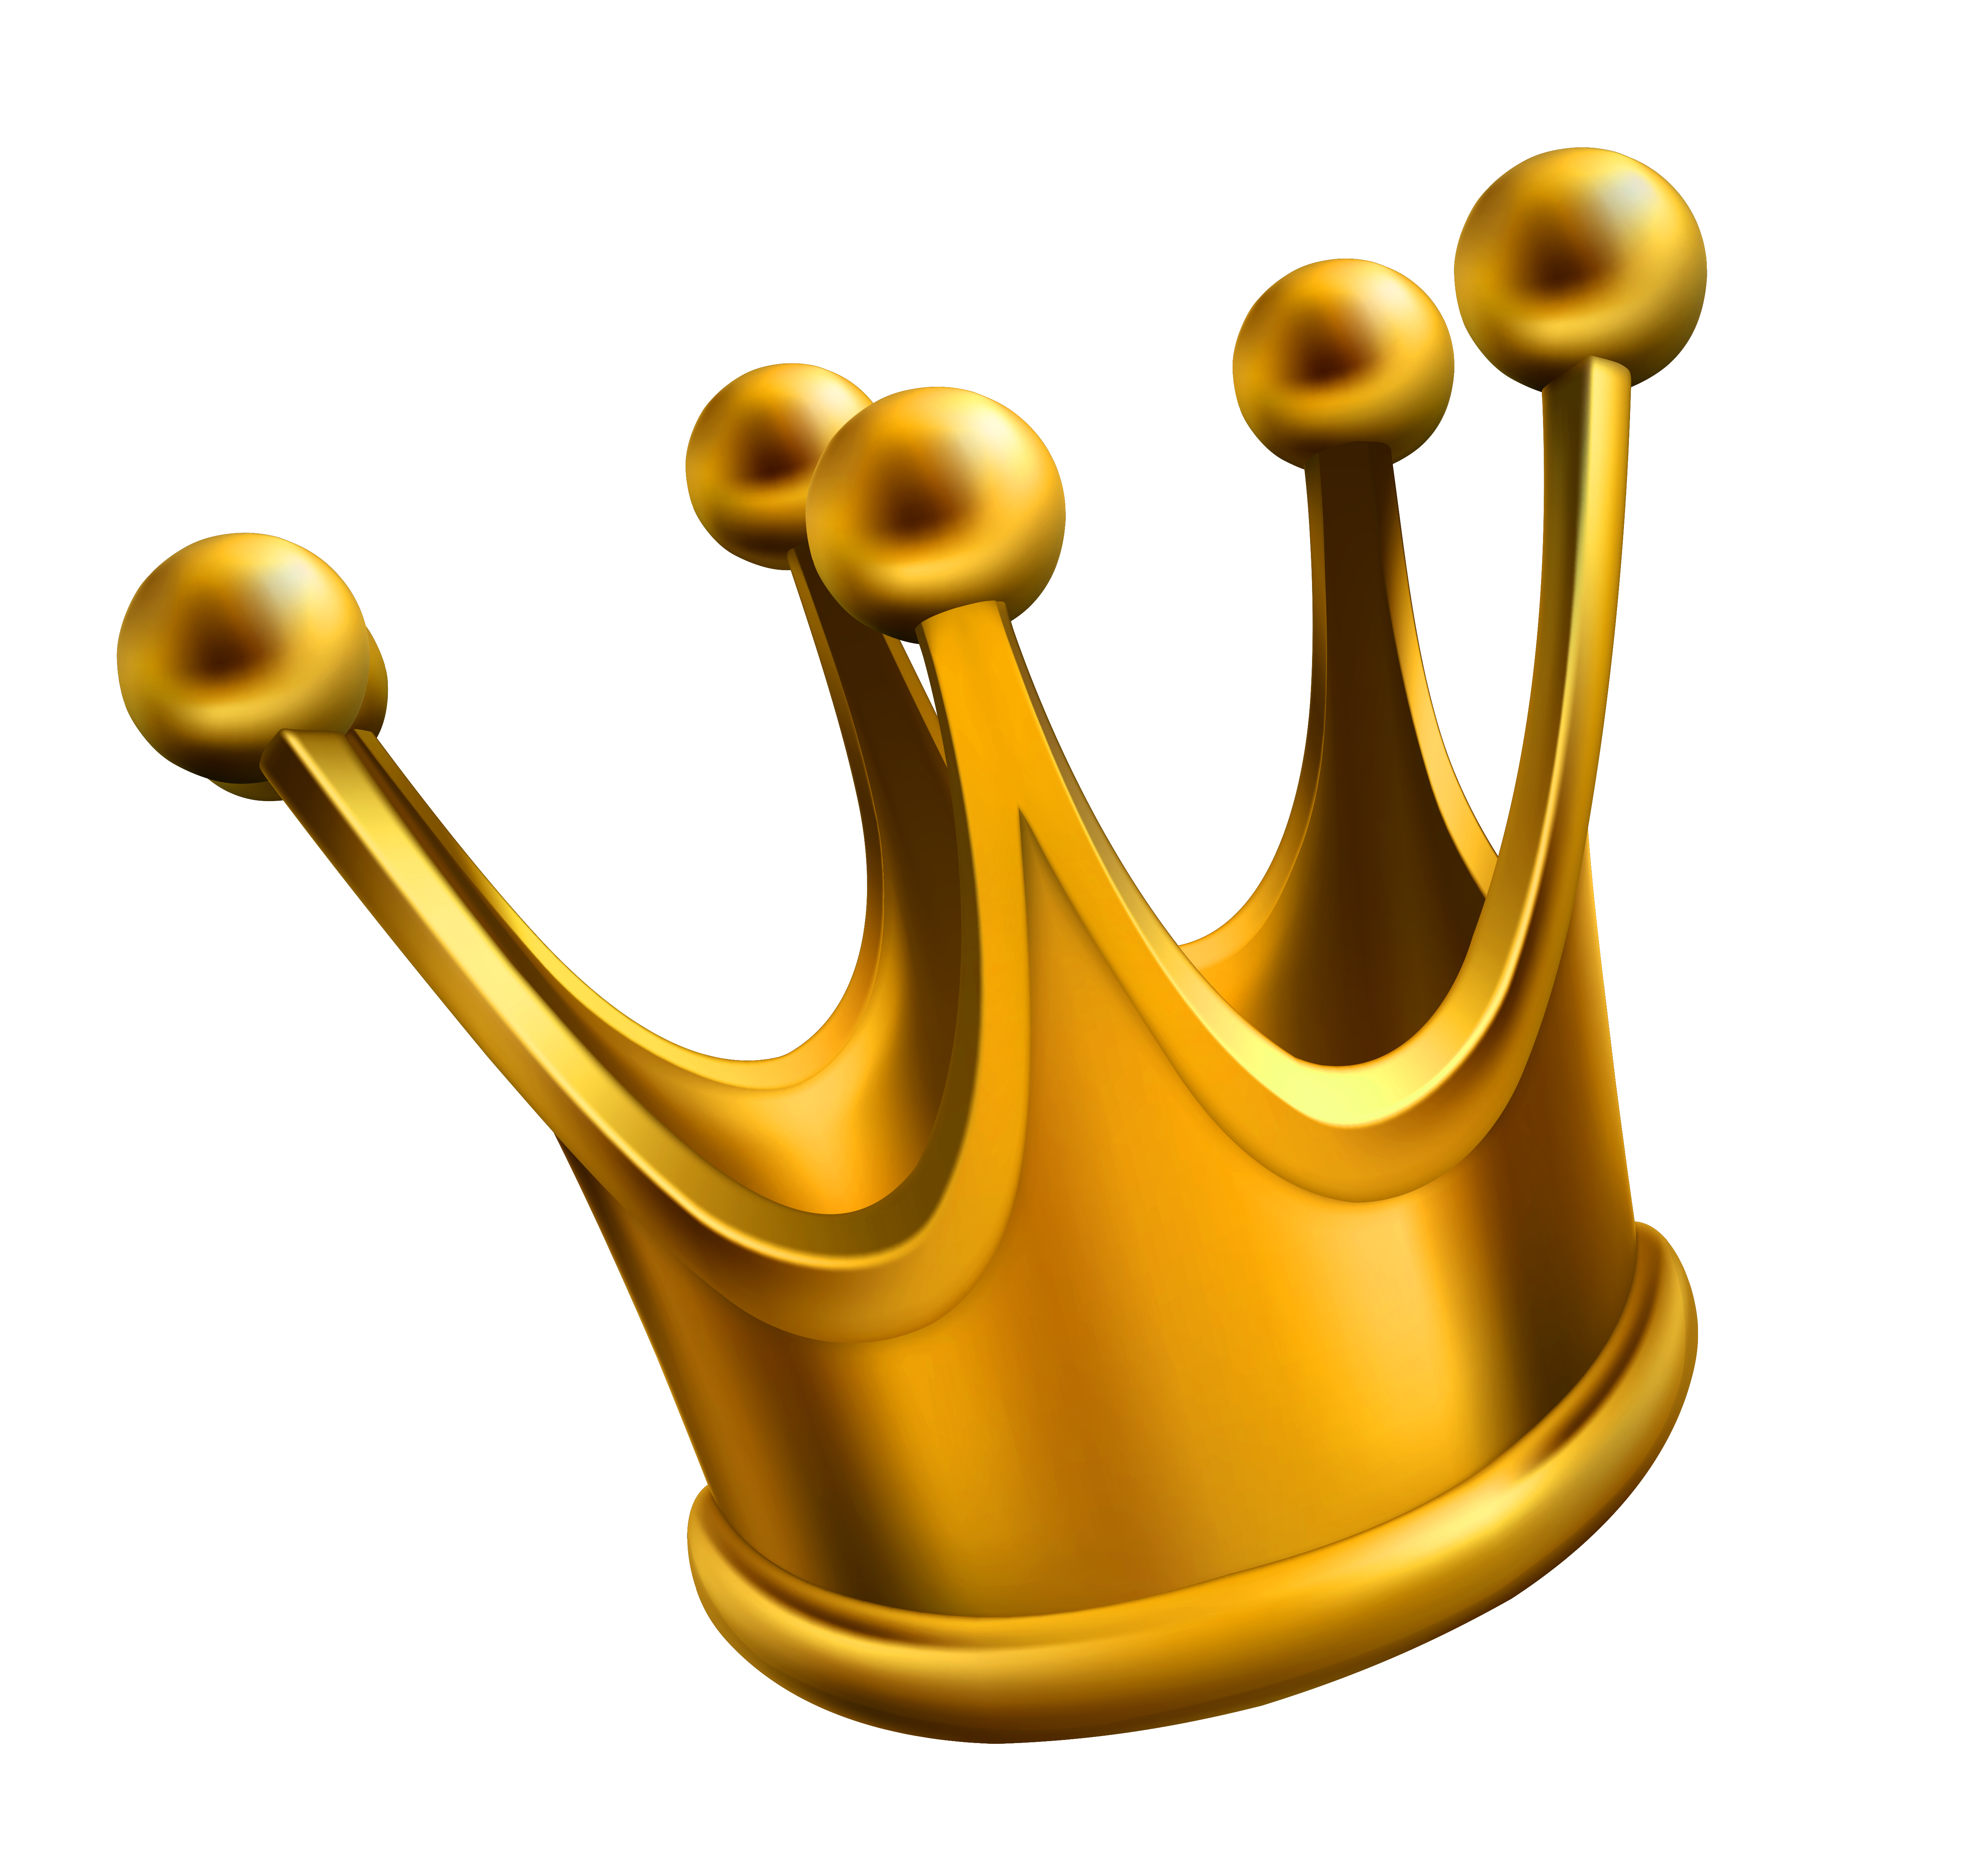 Gold crown vector png. Transparent pictures free icons